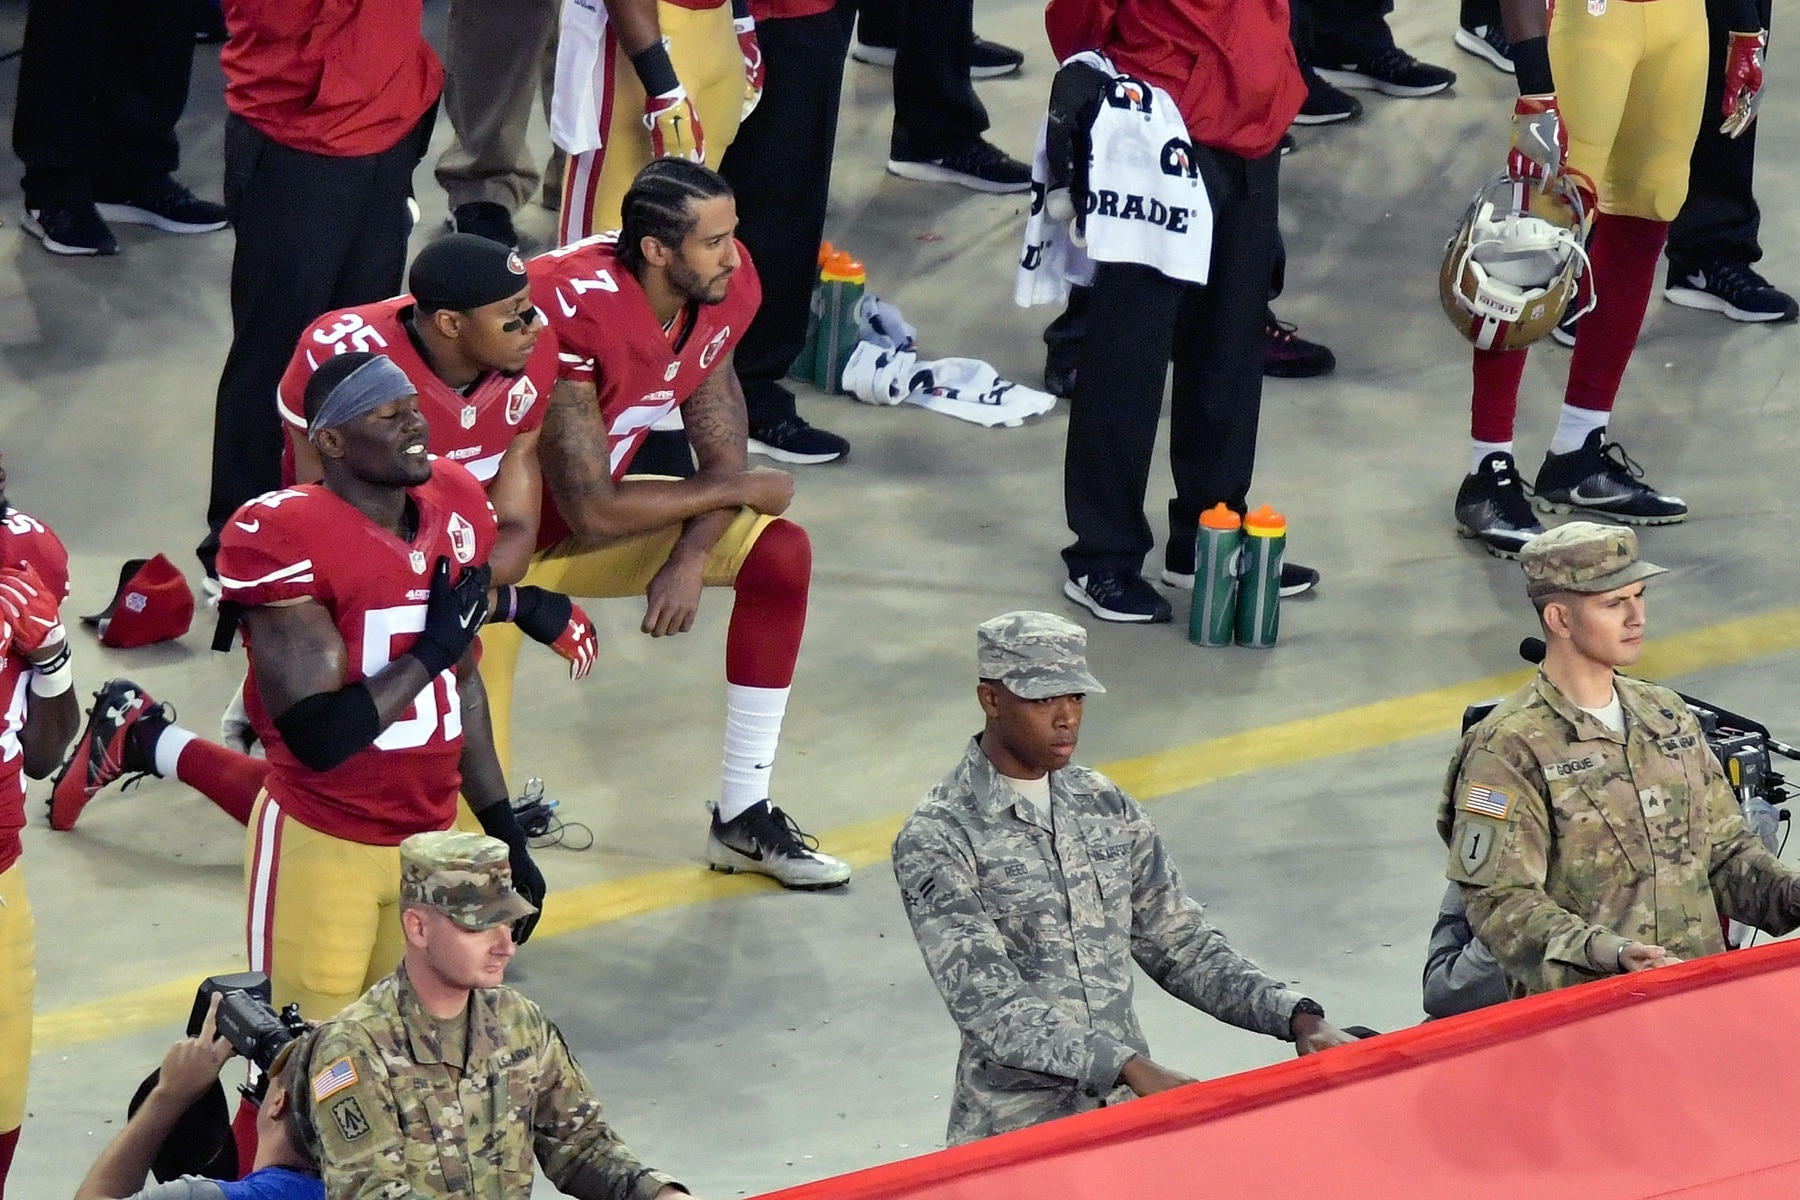 Eric Reid and Colin Kaepernick kneel during the anthem